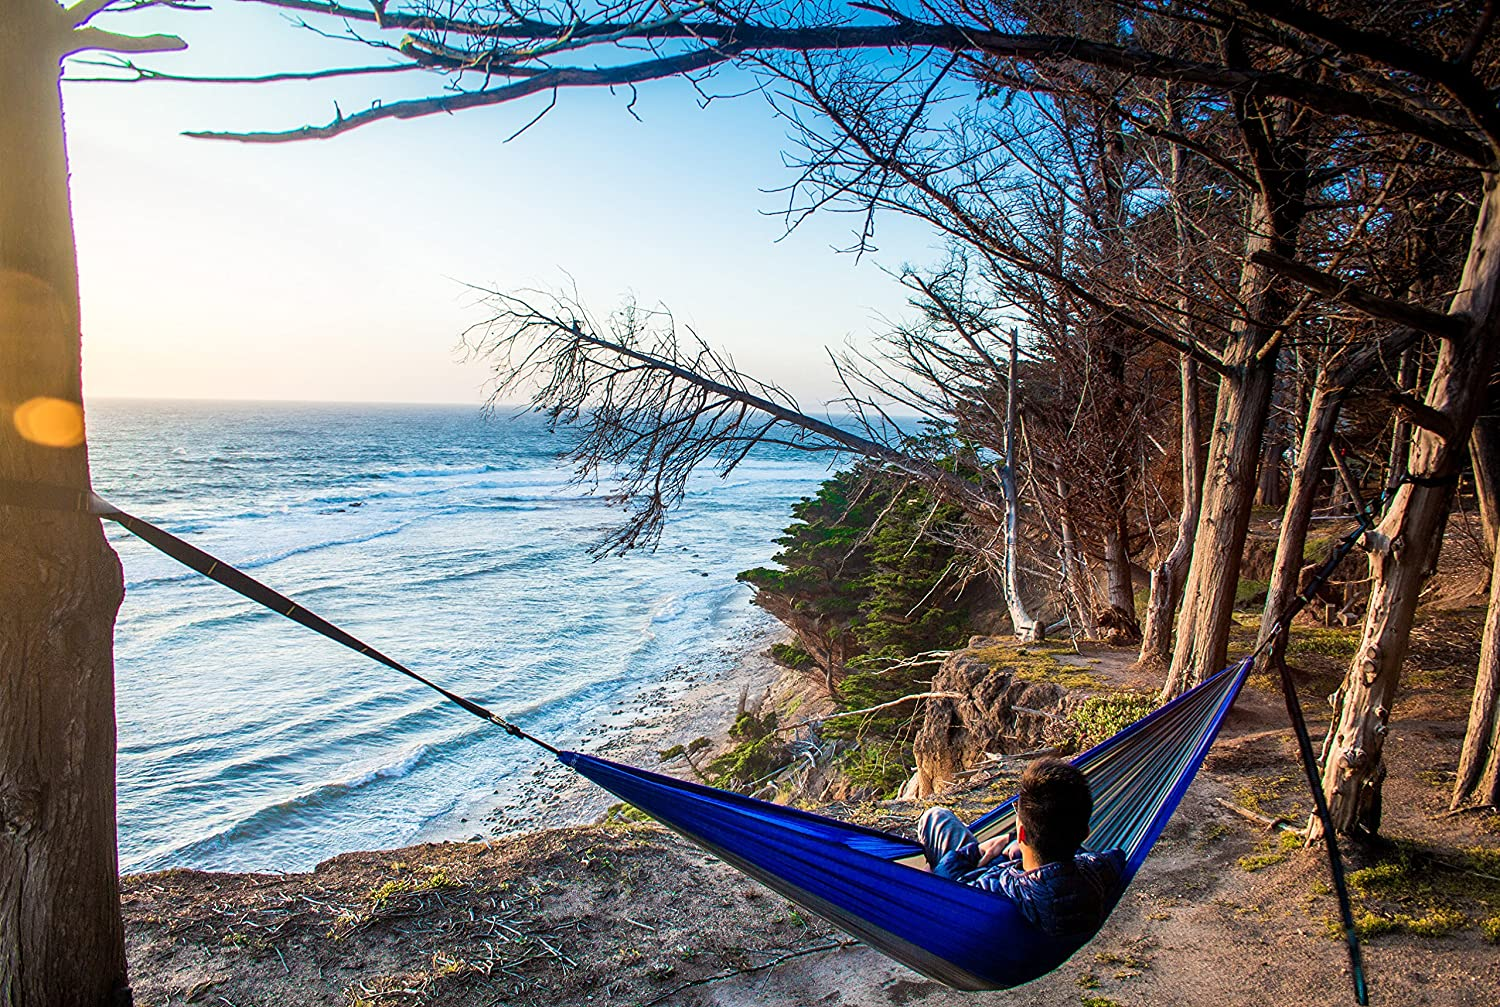 Cool image about Travel Hammock - it is cool